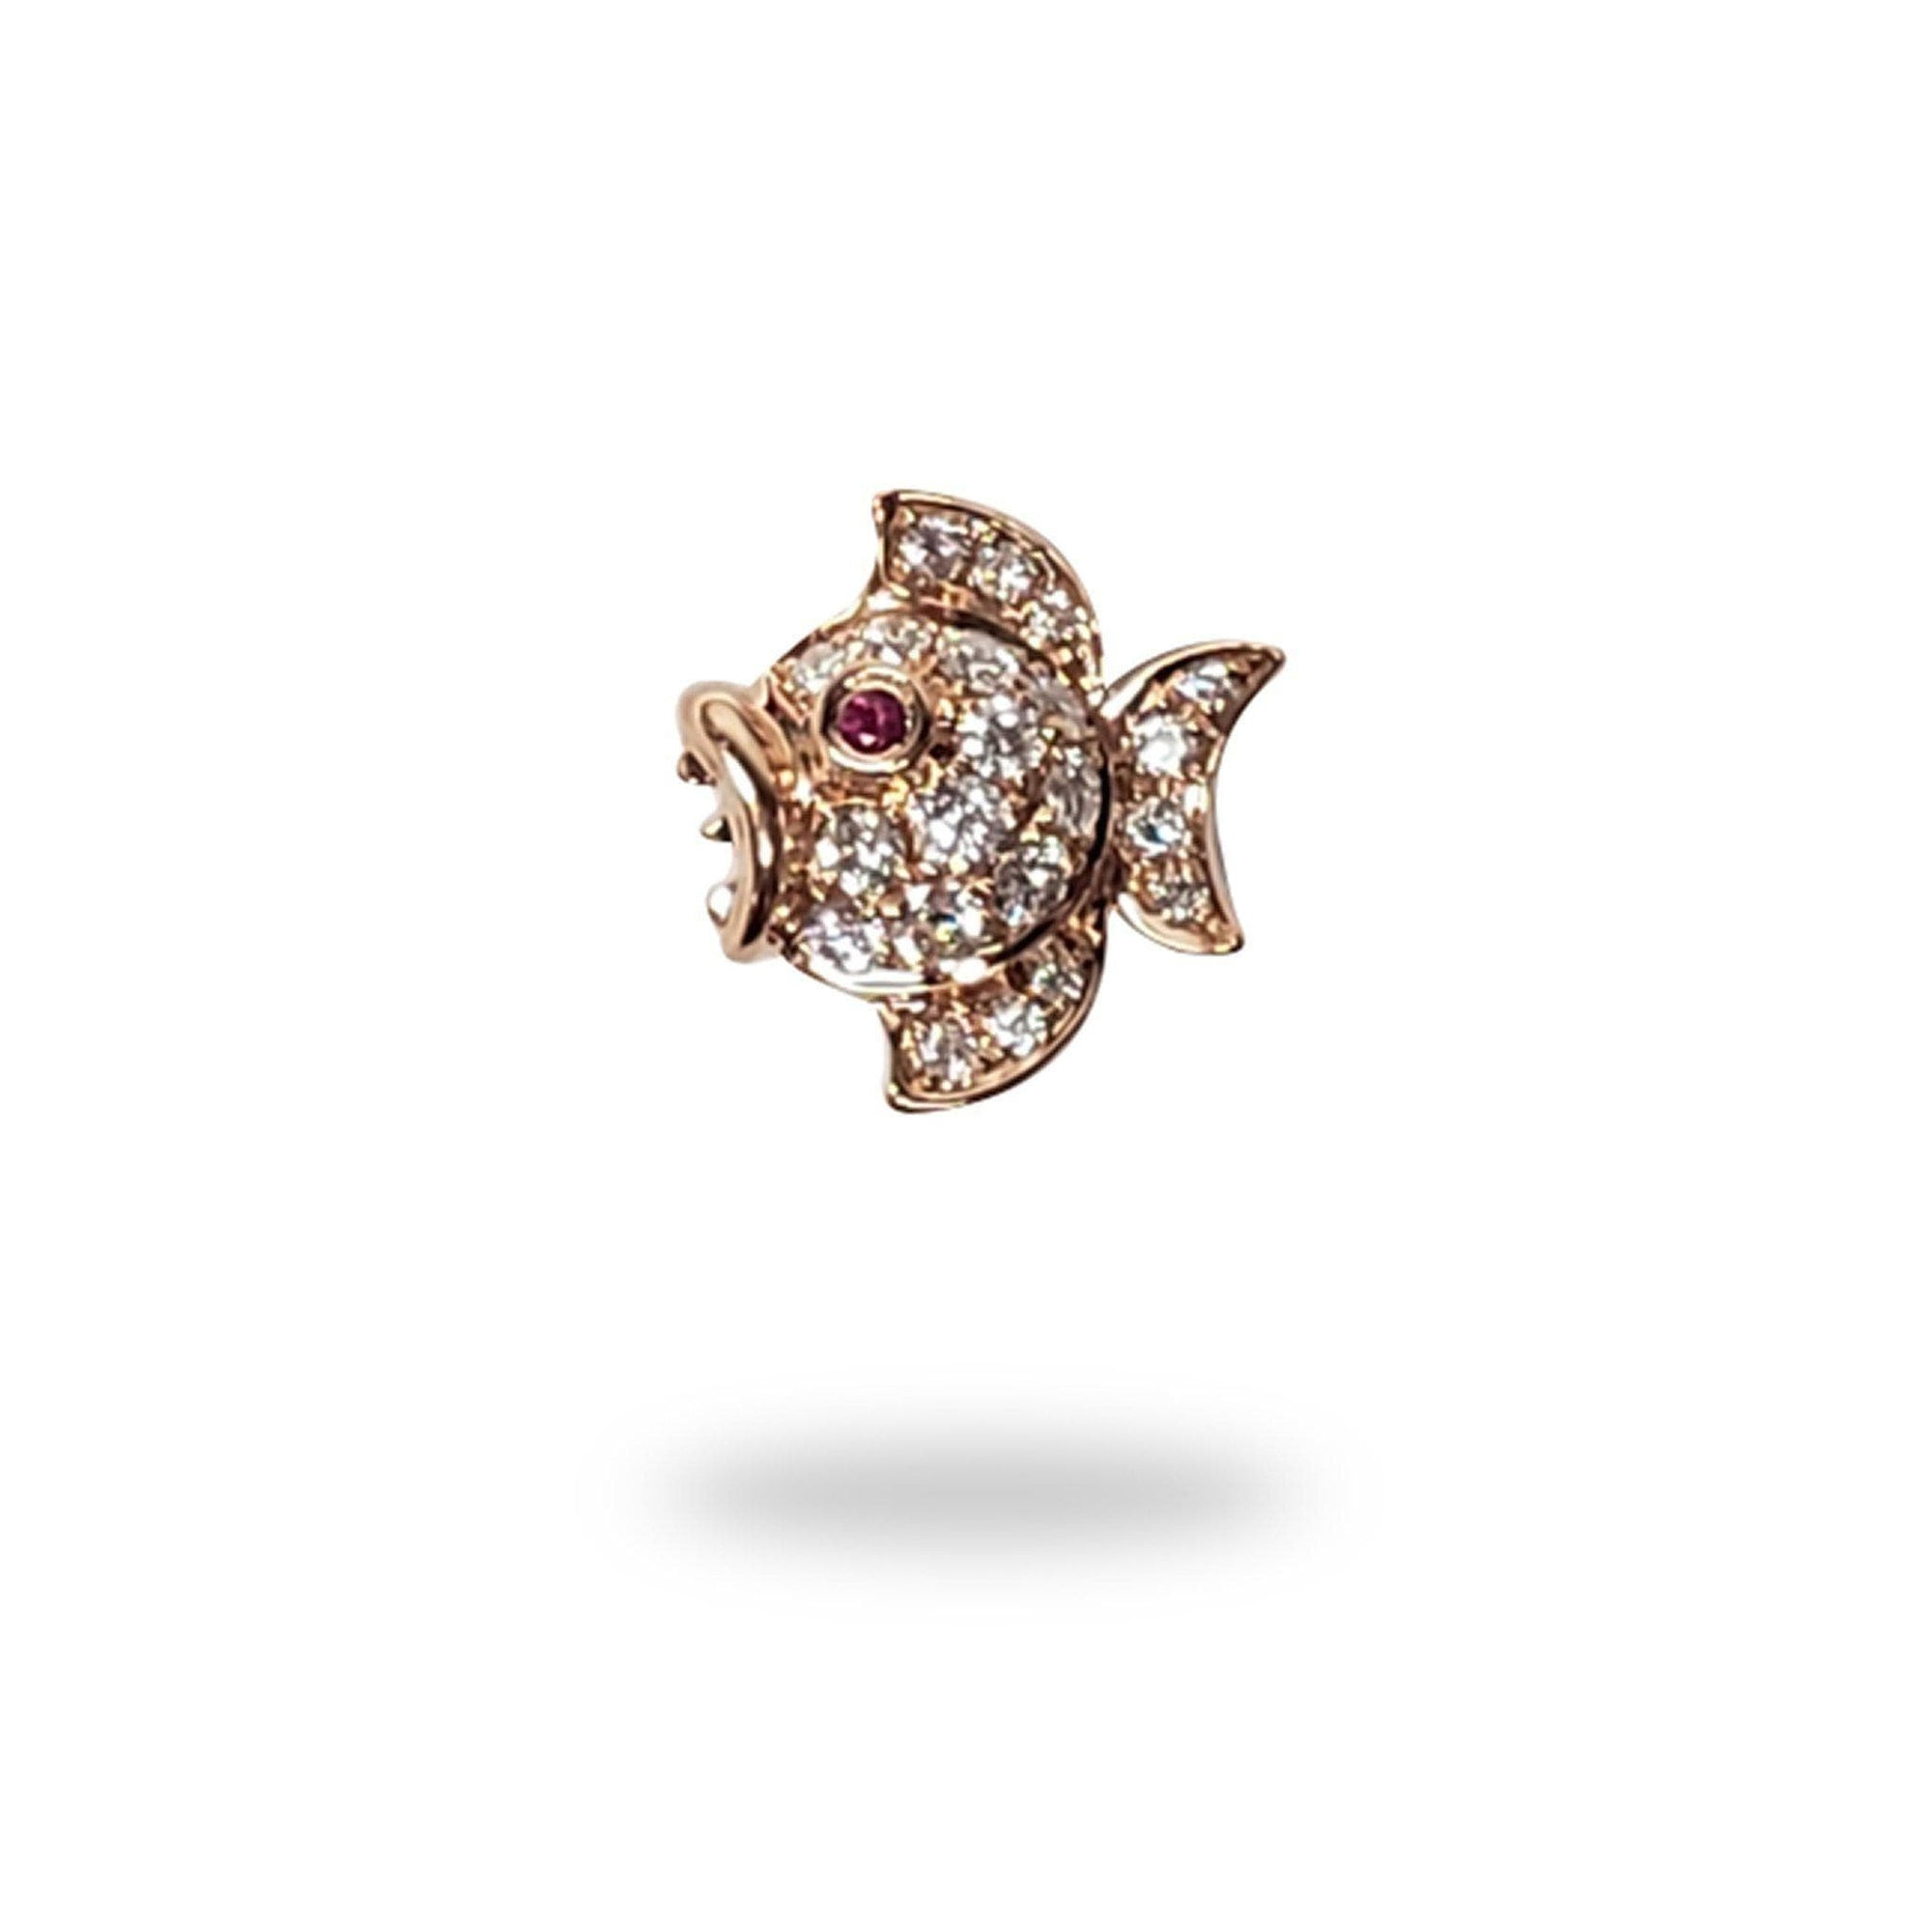 Puffy Fish Sapphire Pendant with Diamonds in 14K Rose Gold - Maui Divers Jewelry